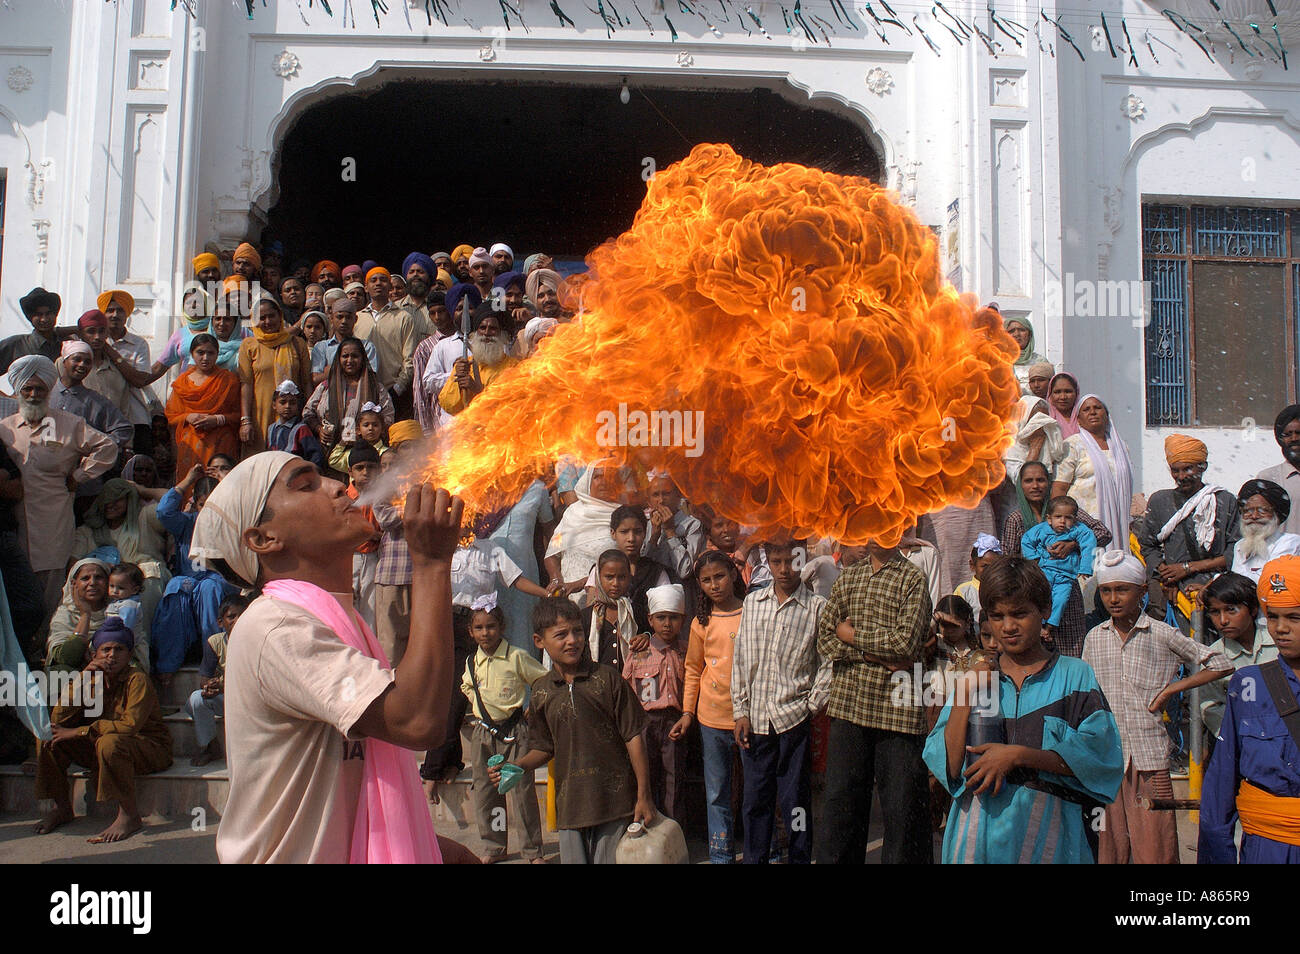 Man performing art of blowing fire from his mouth at Baba Bakala a small town in the Amritsar district of Punjab - Stock Image